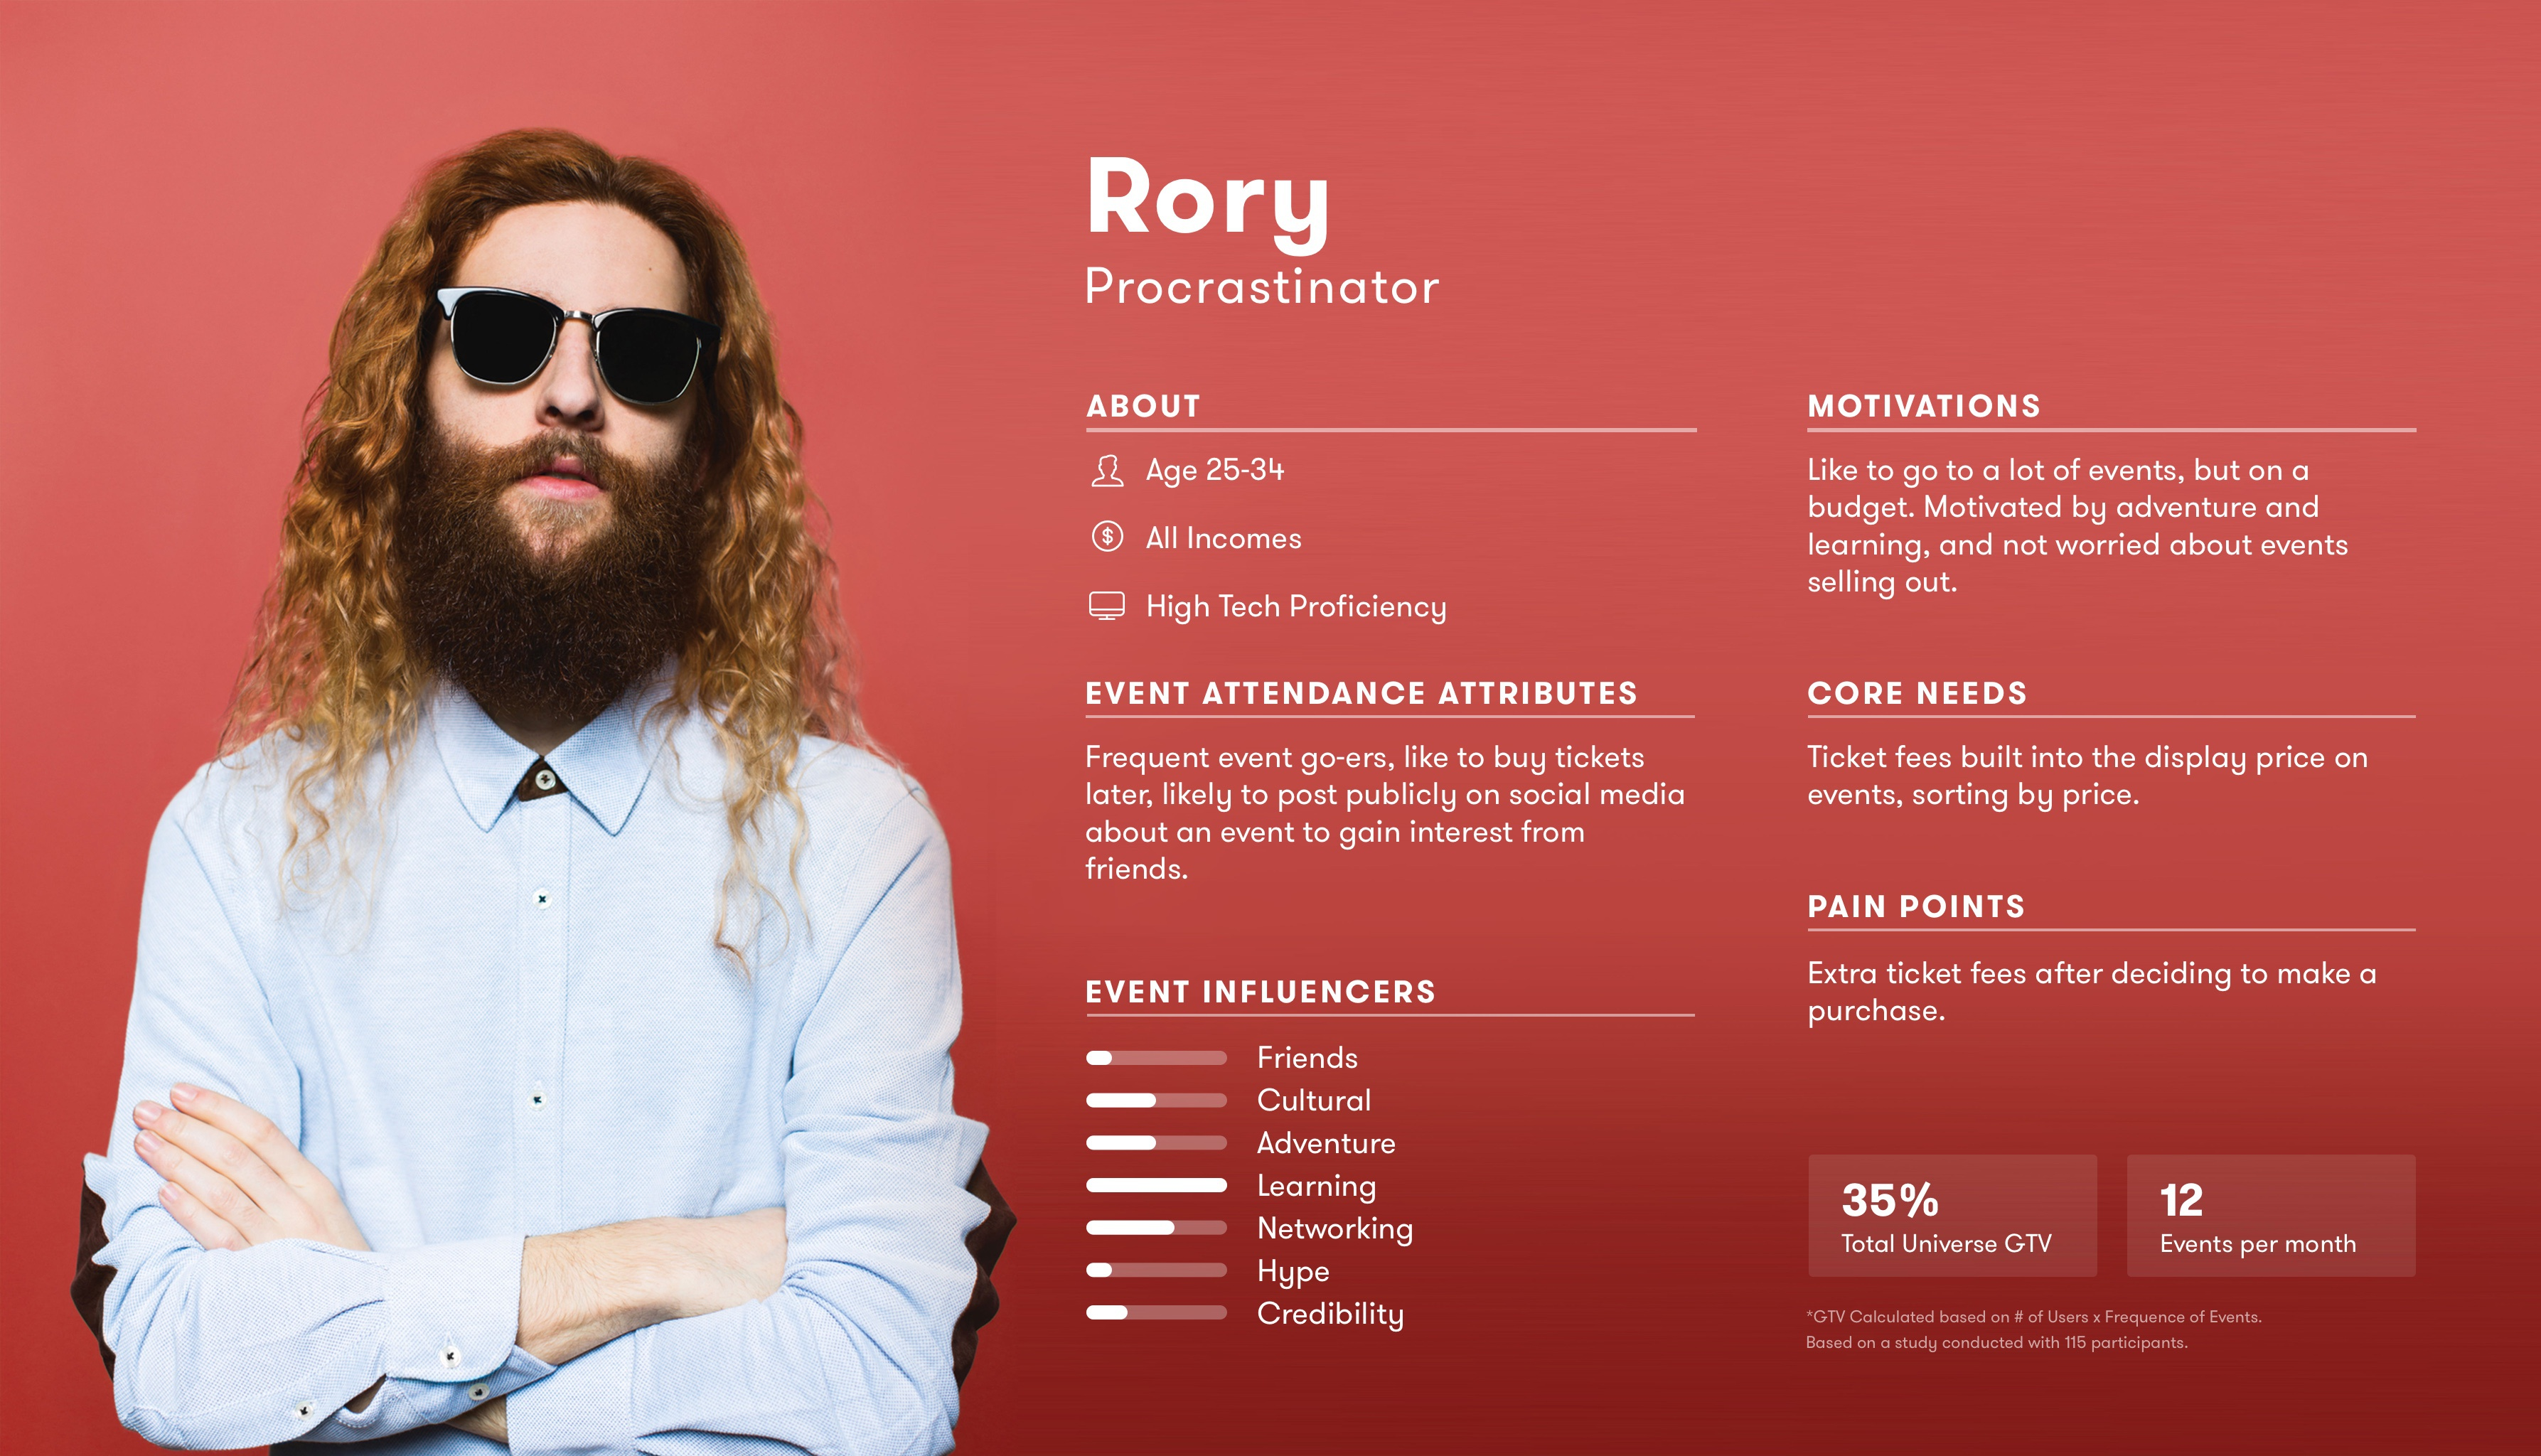 Rory the procrastinator